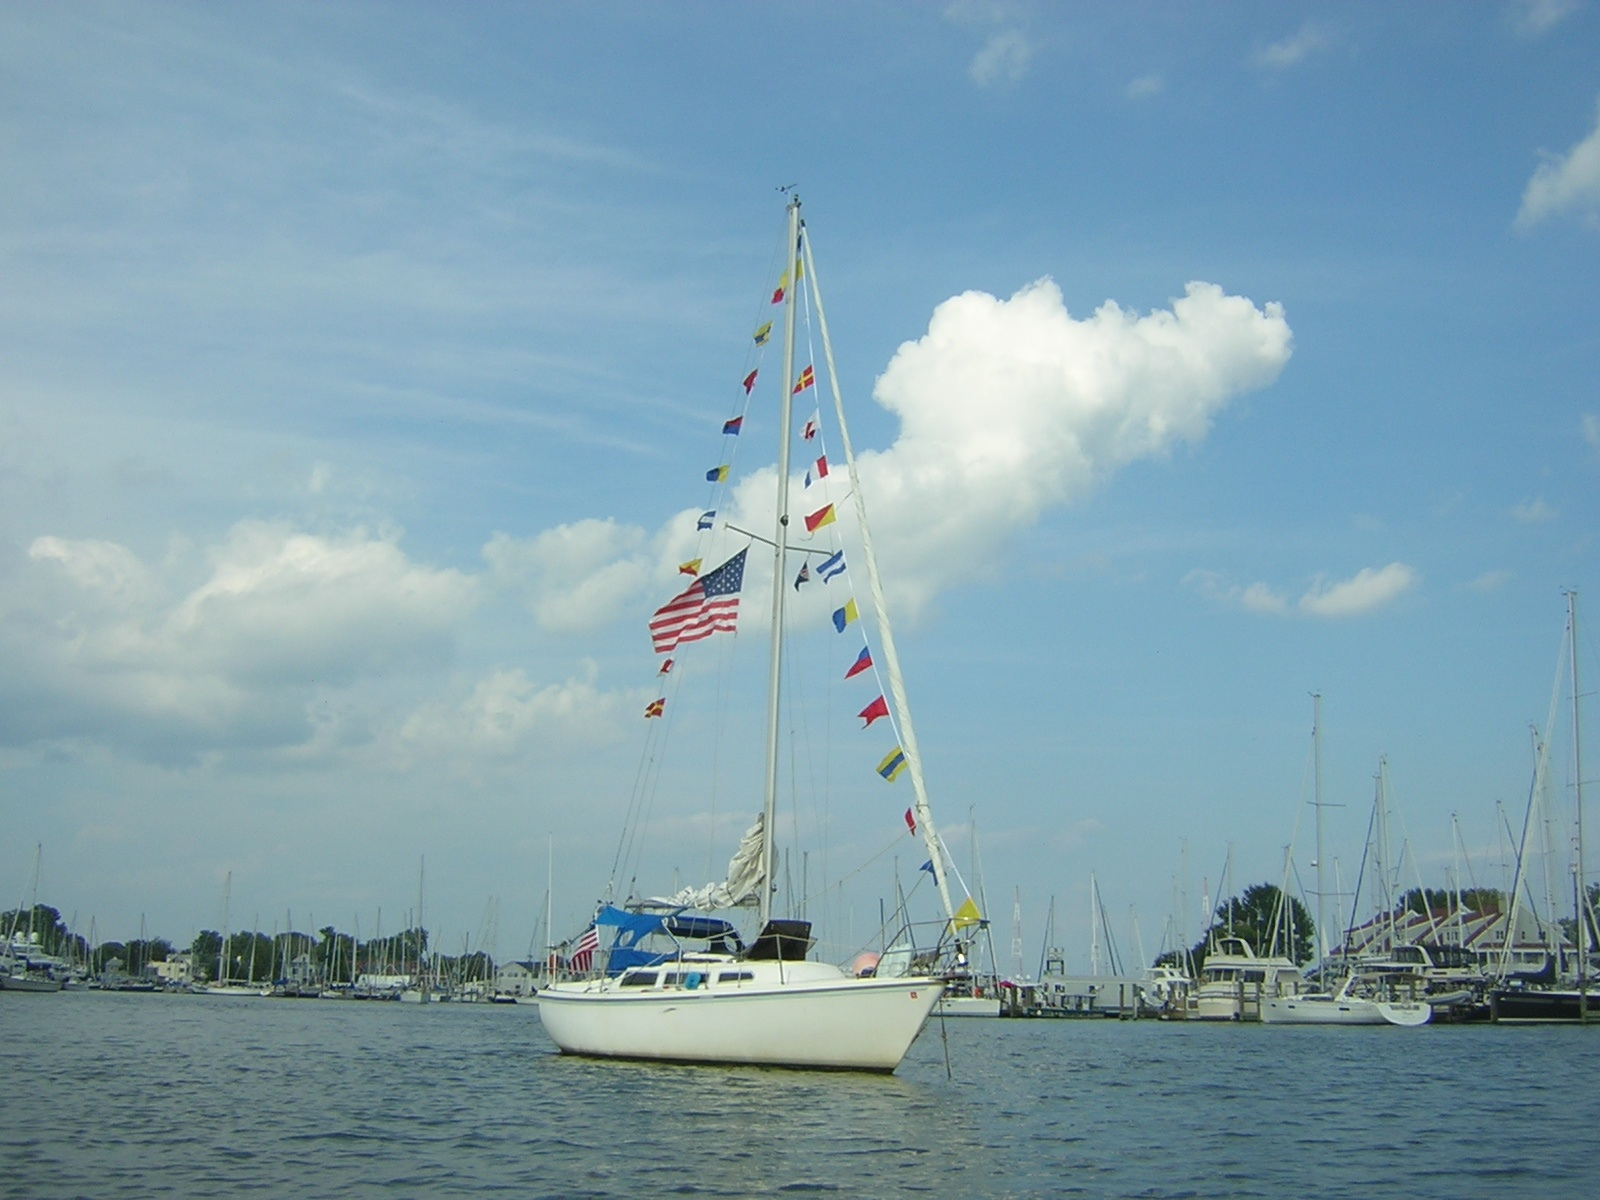 Sailboat dressed for Labor Day with colorful flags. At Back Creek, MD